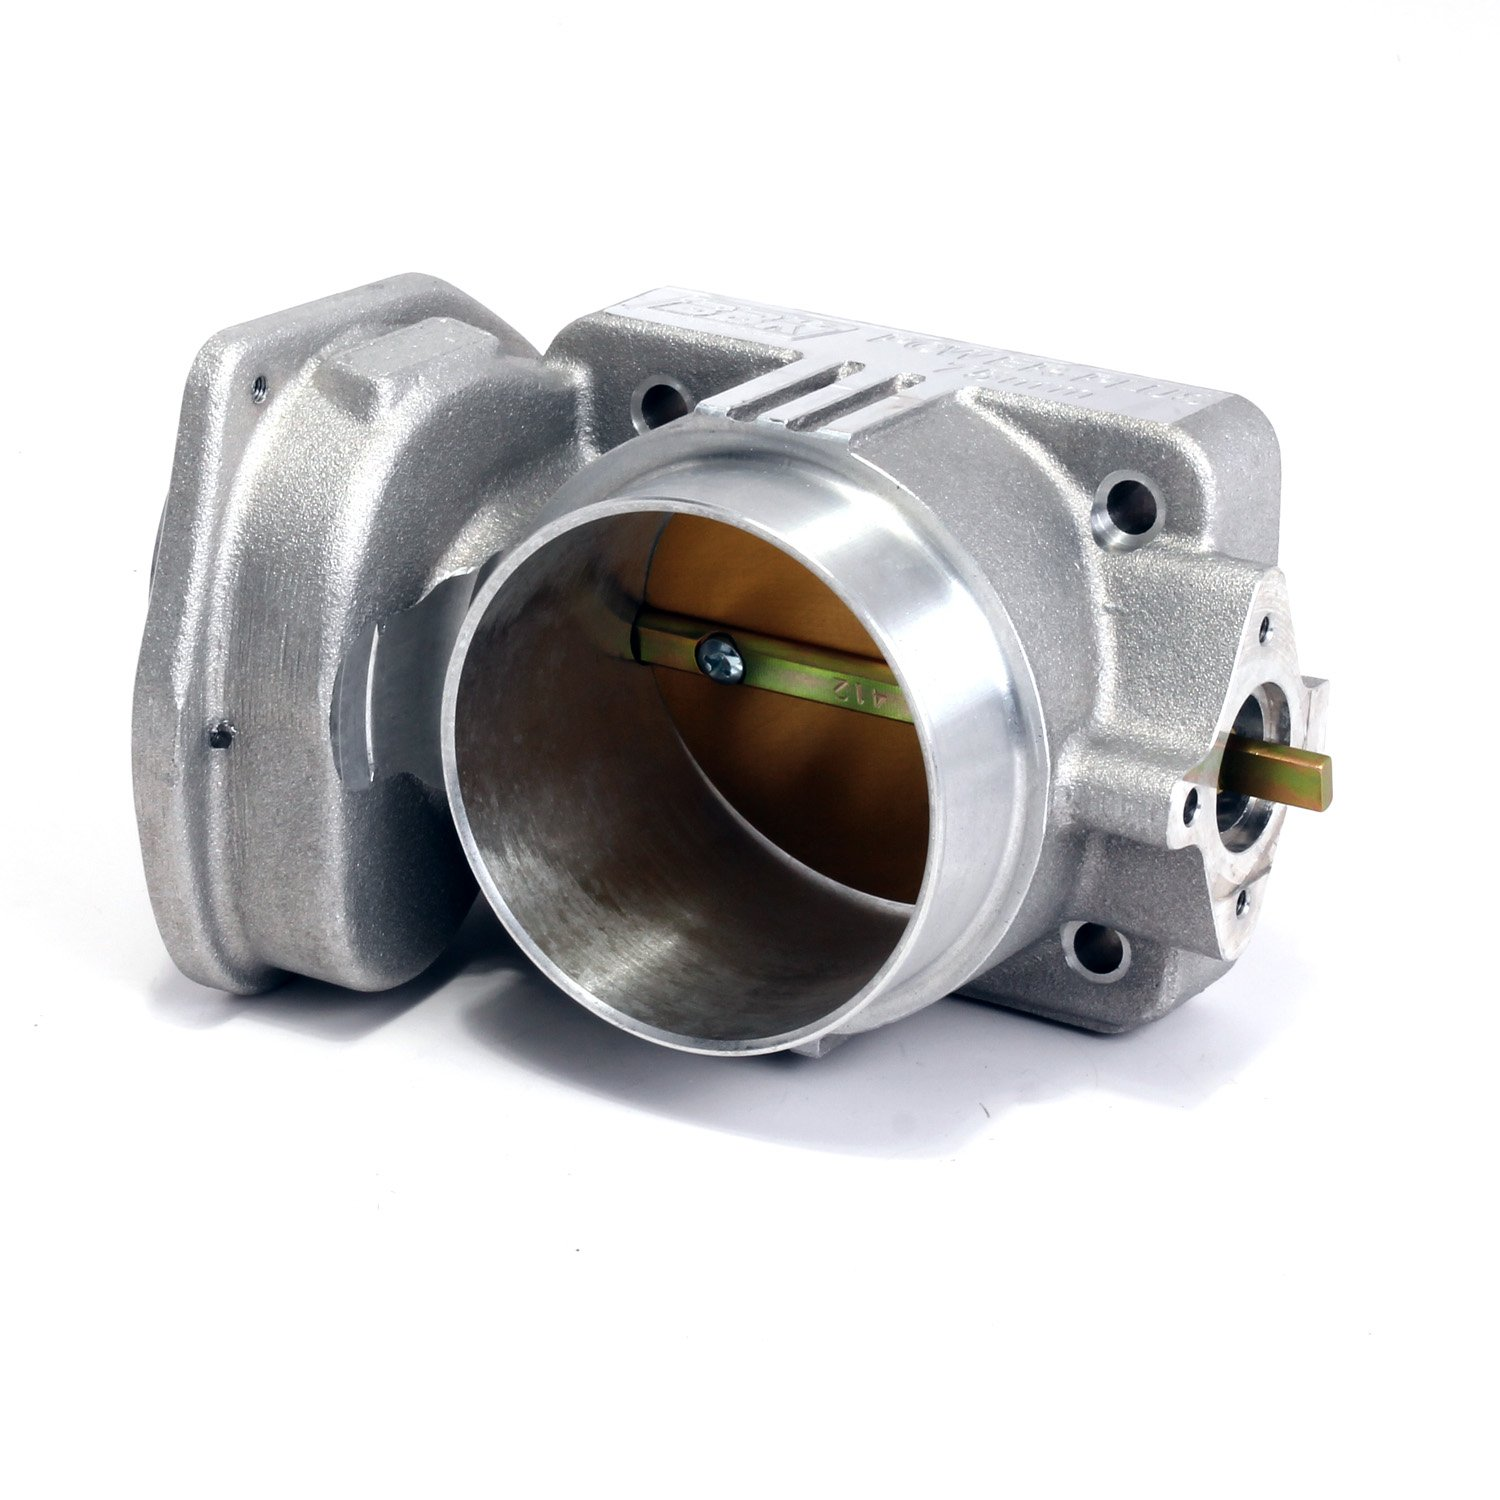 c7f29bd485e47 ... BBK 1758 75mm Throttle Body - High Flow Power Plus Series for Ford 4.6L  F Series ...